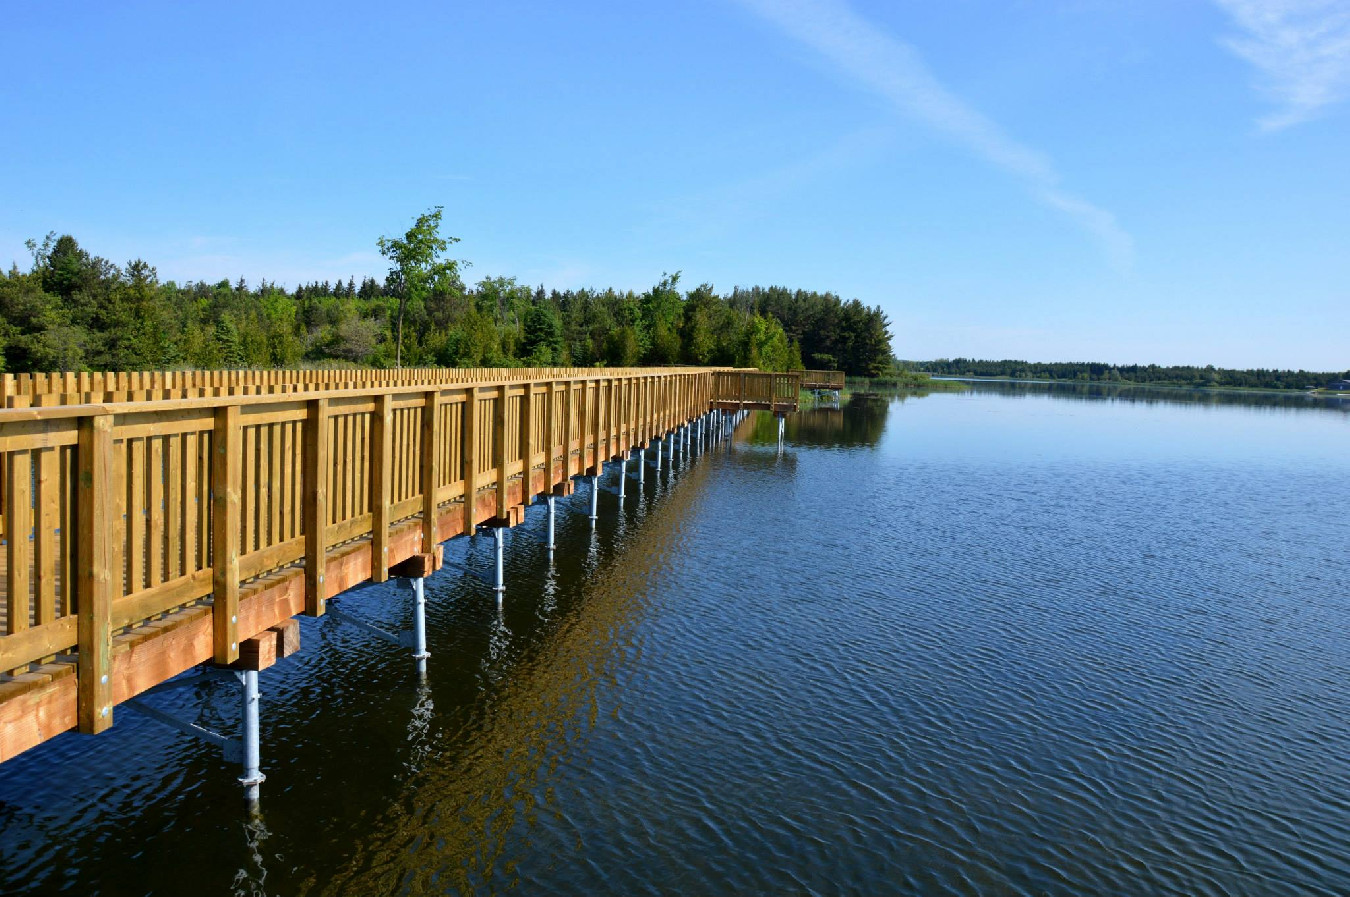 Enhancing Island Lake Conservation Area